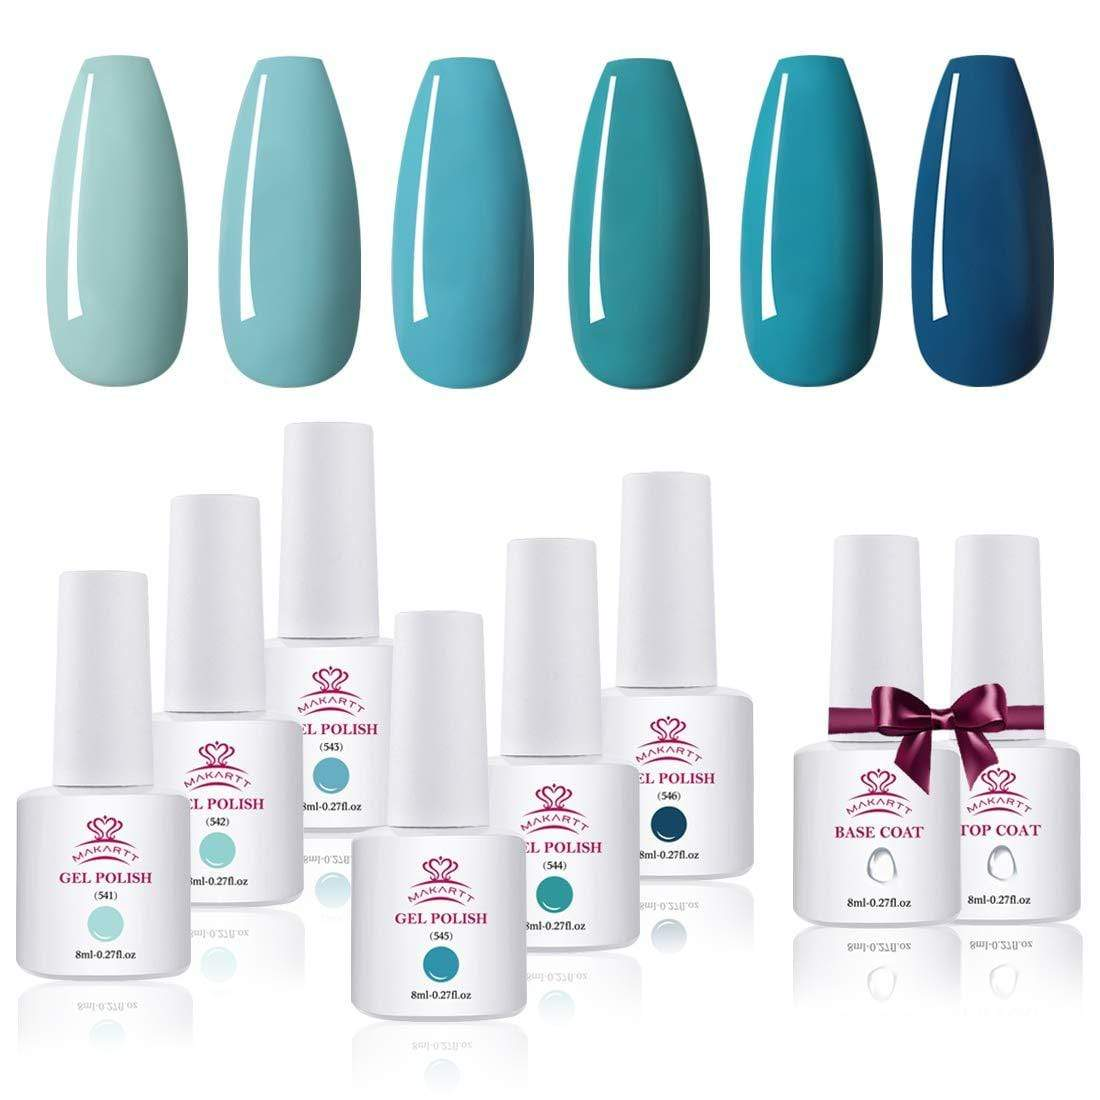 6 Color Blue Turquois Gel Polish Set with Base and Top Coat - Makartt